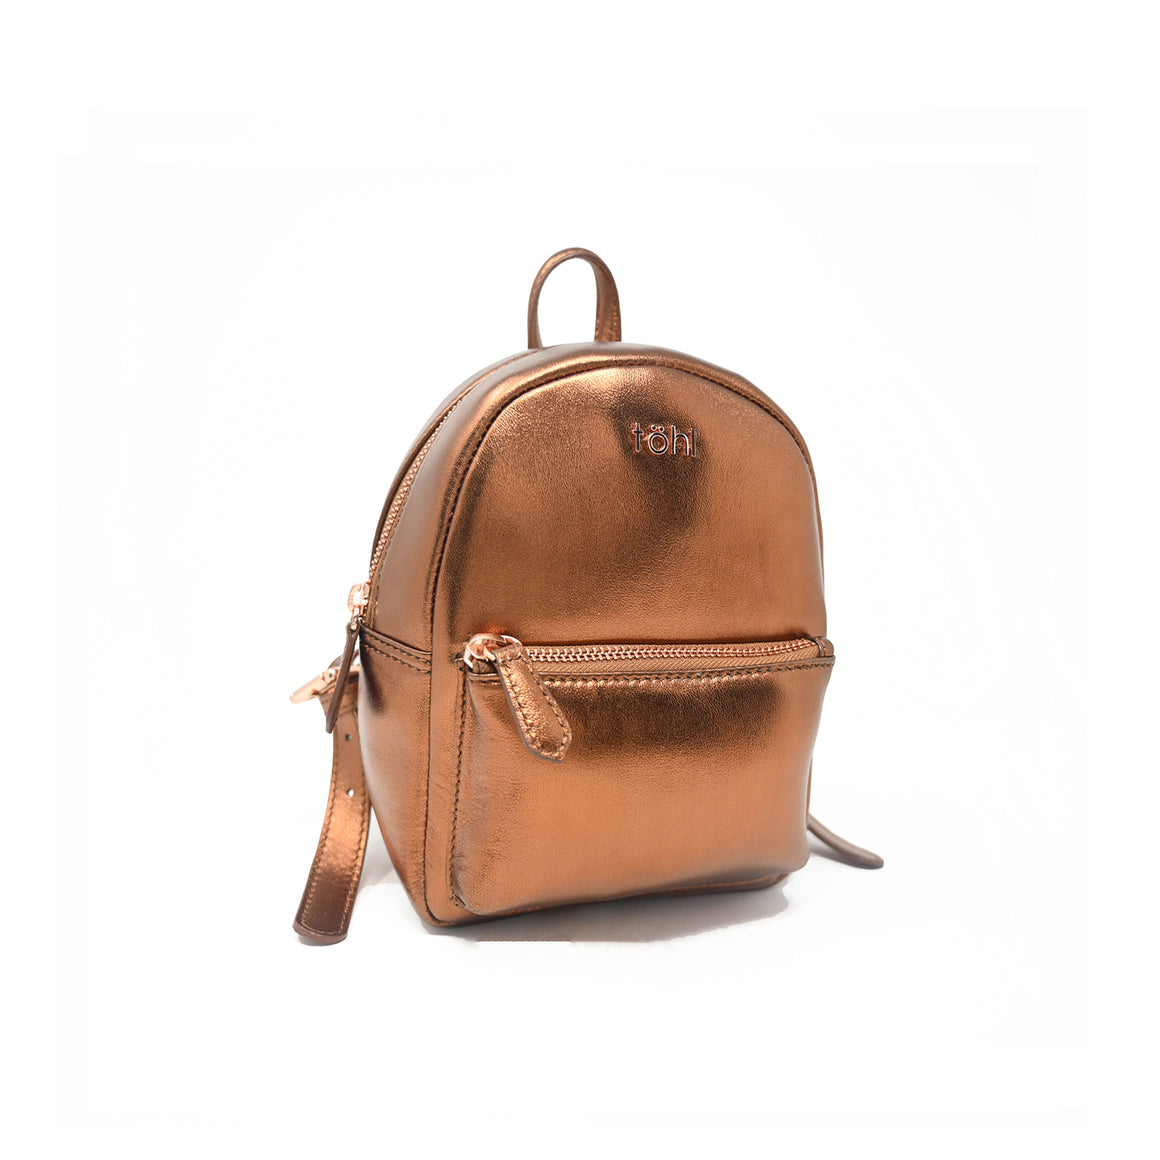 BP0017 - TOHL NEVERN WOMEN'S BACKPACK - BROWN